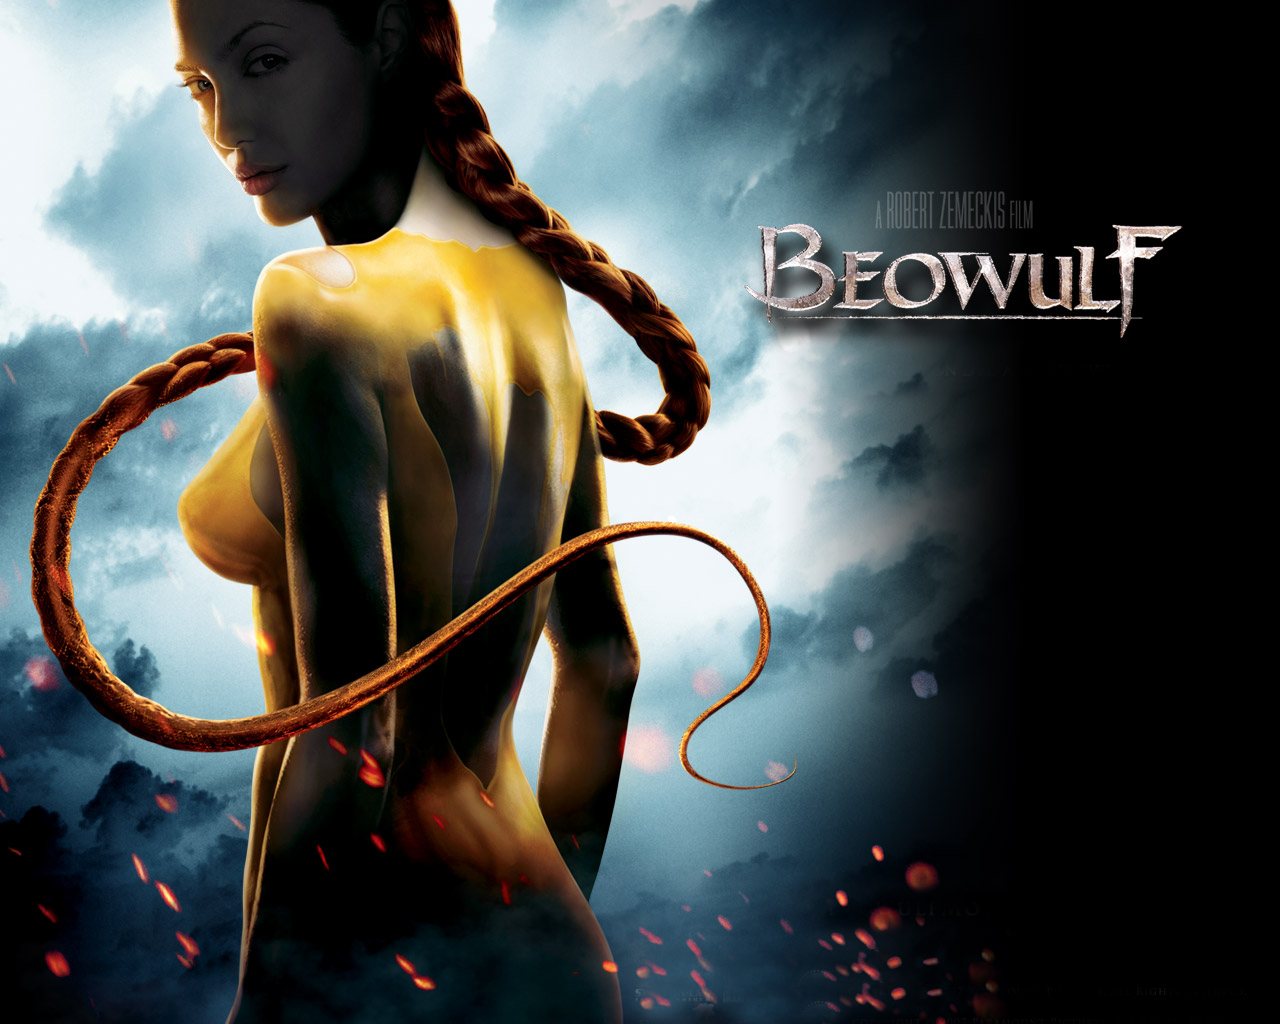 beowulf hollywood movie hd wallpapers collection ~ download free